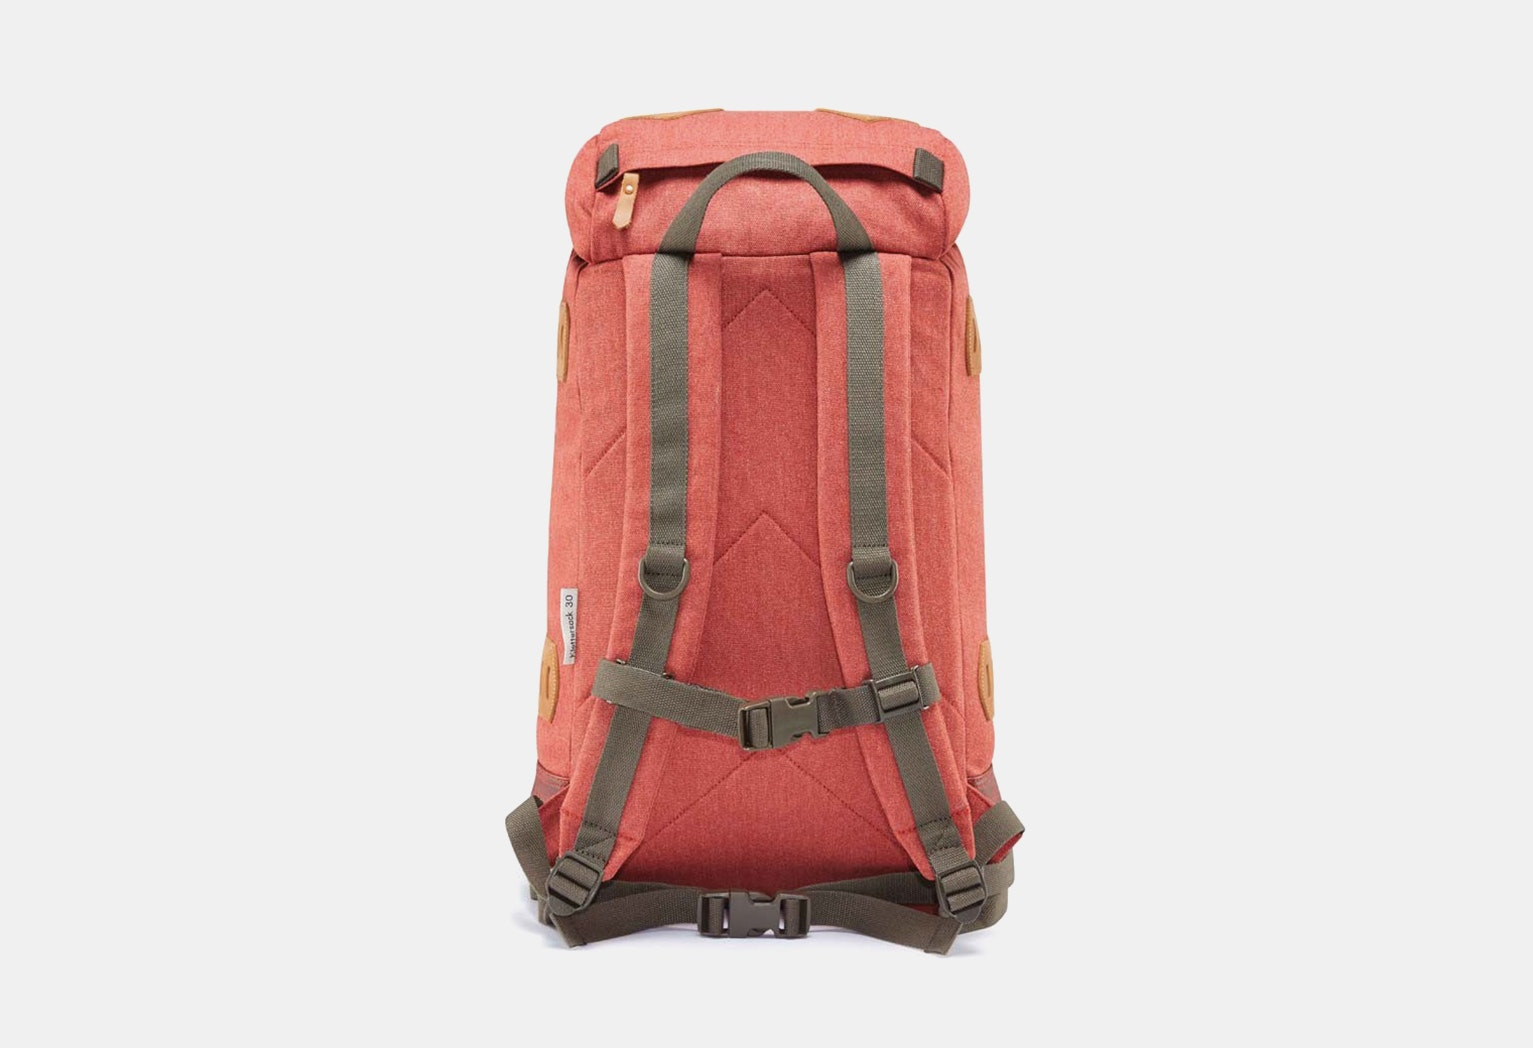 Lowe Alpine Teton Range Day Packs